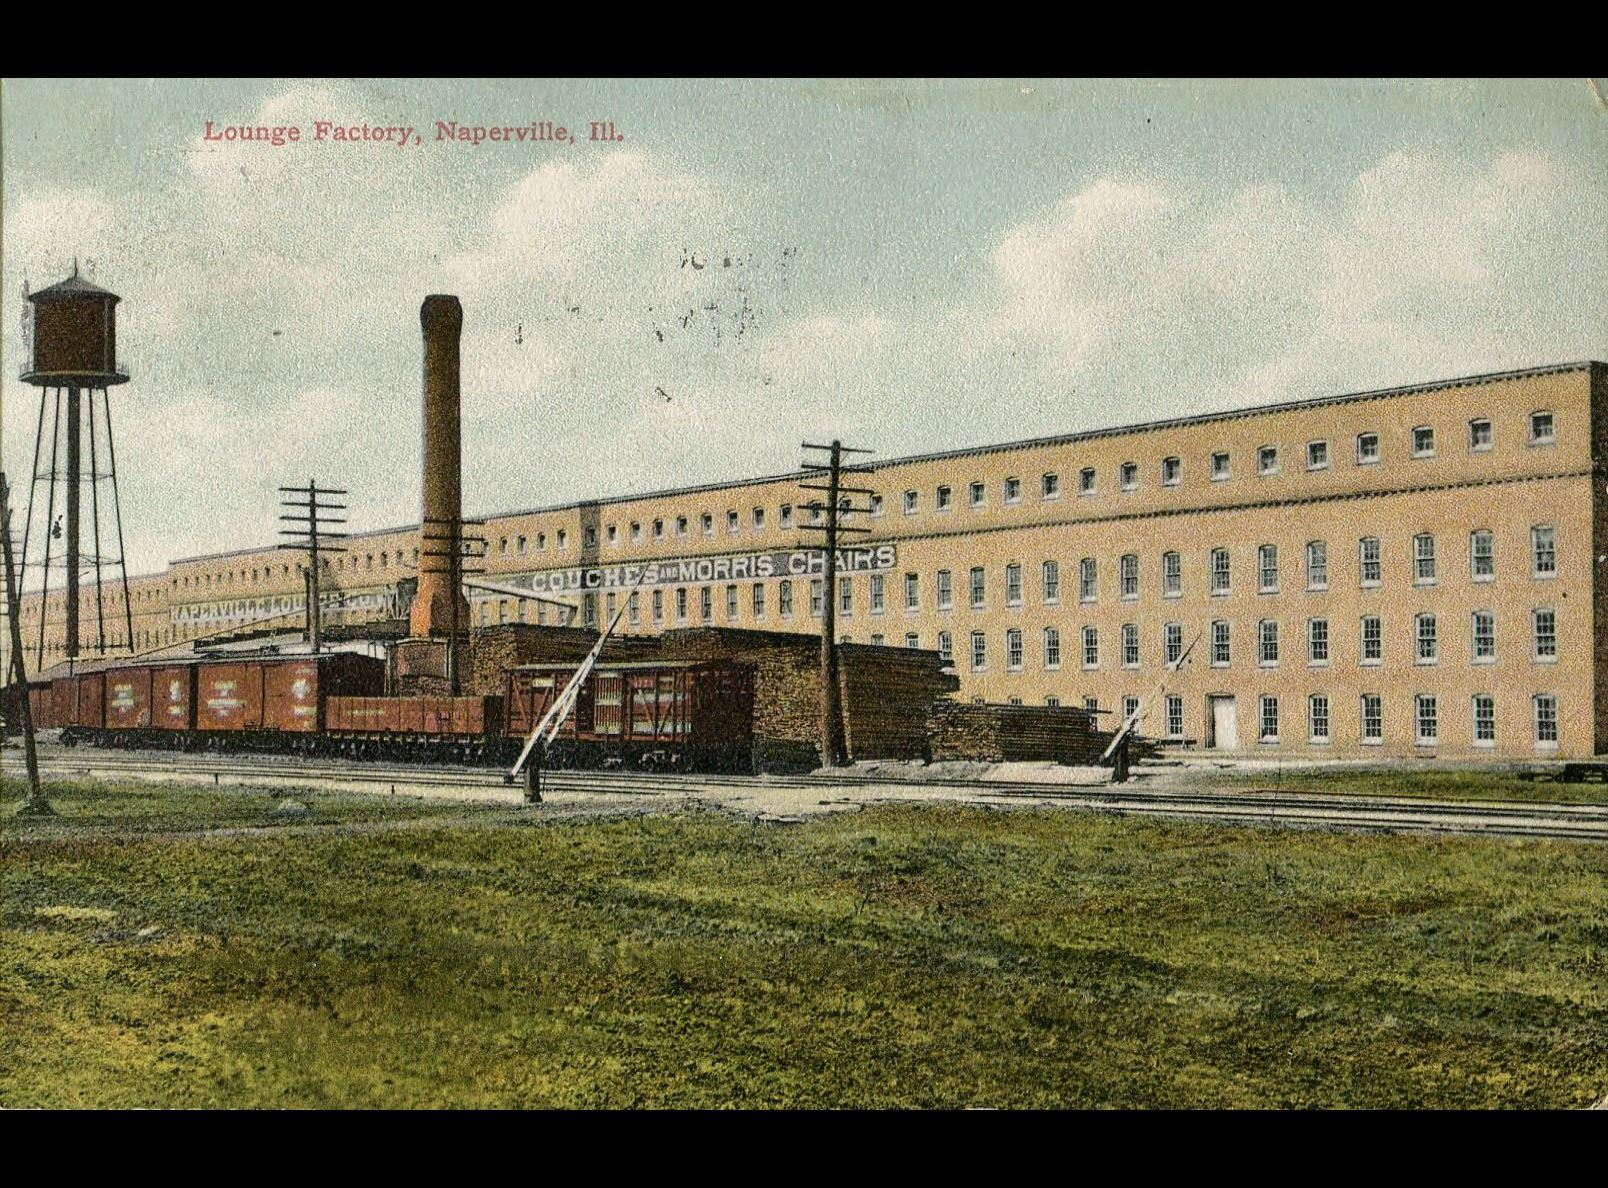 Lounge Factory, postmarked October 30, 1909